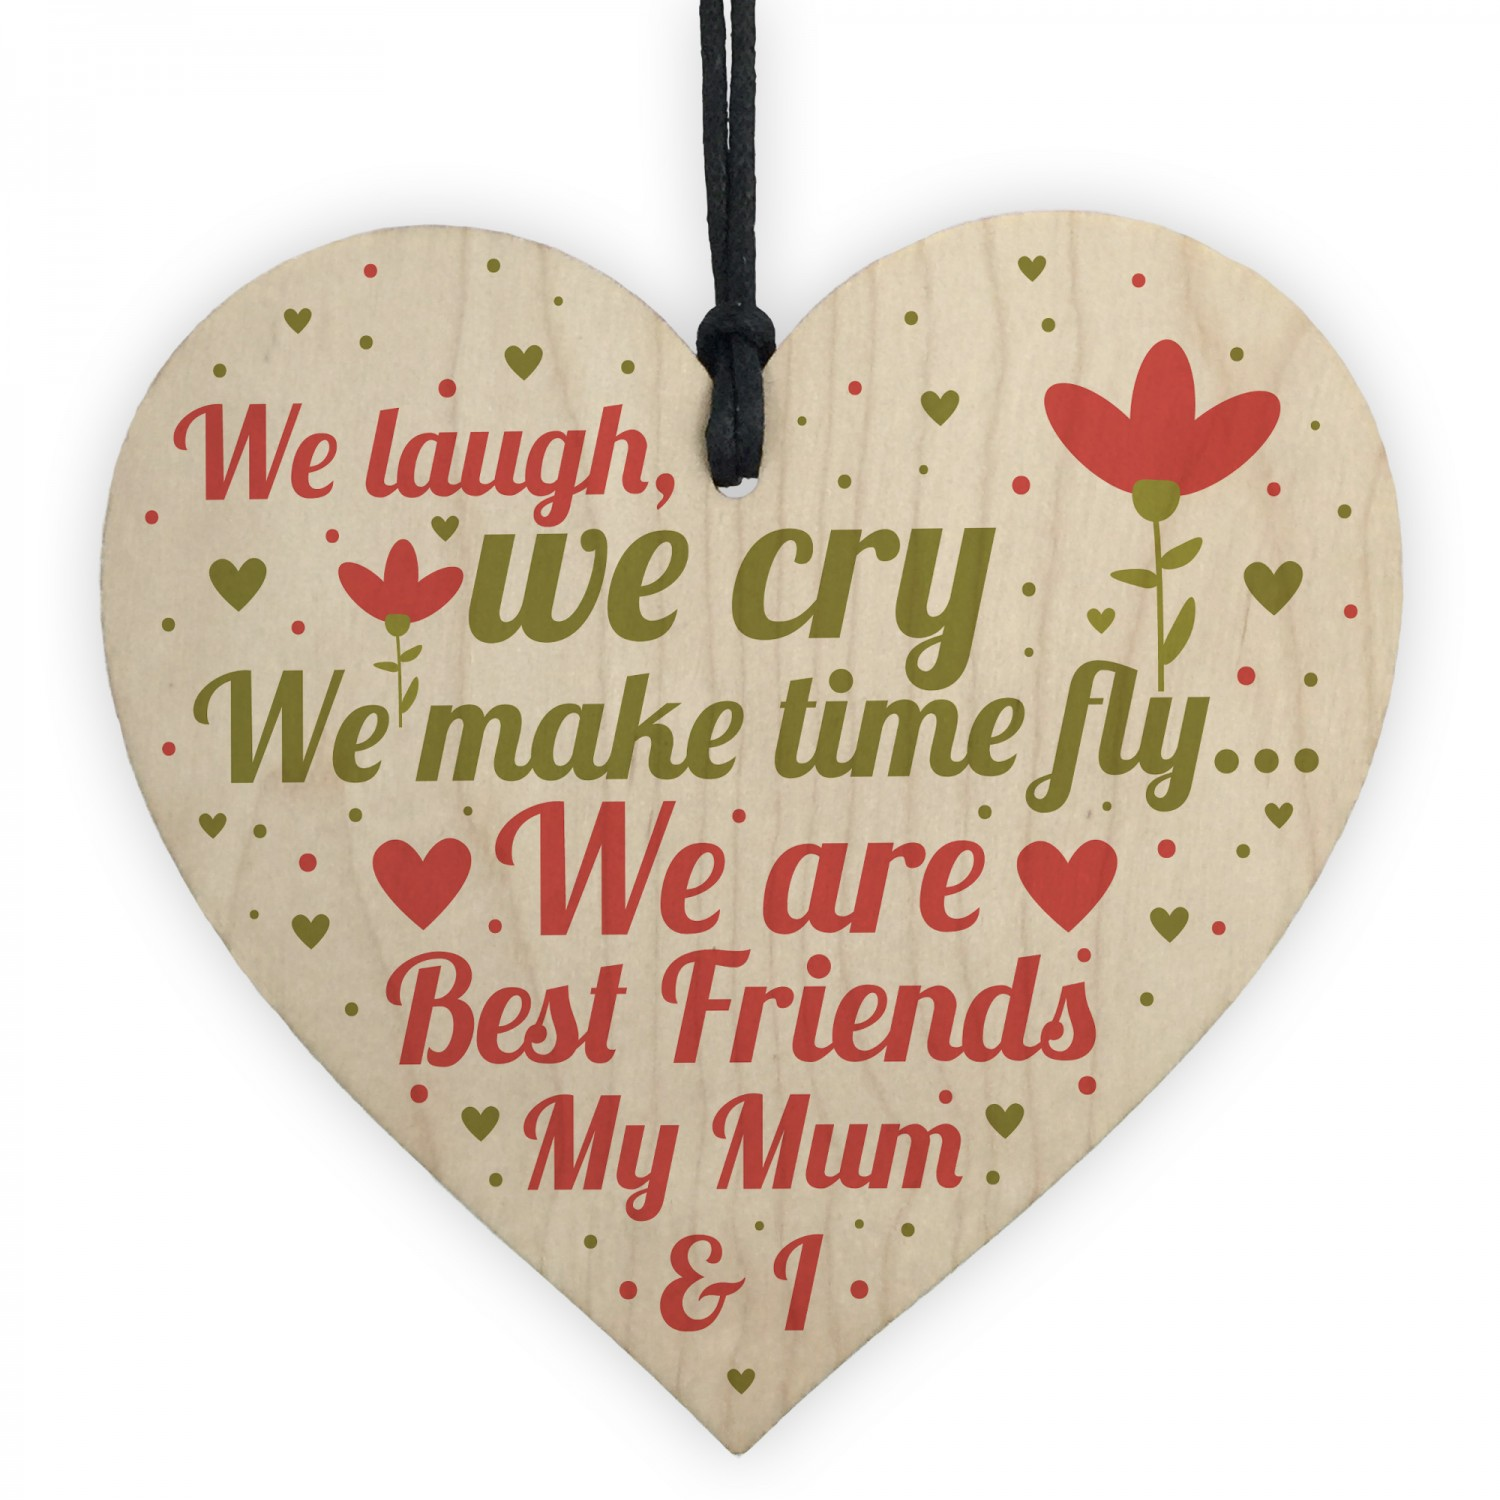 Mum Best Friend Gifts Wooden Heart Sign Christmas Birthday Gift